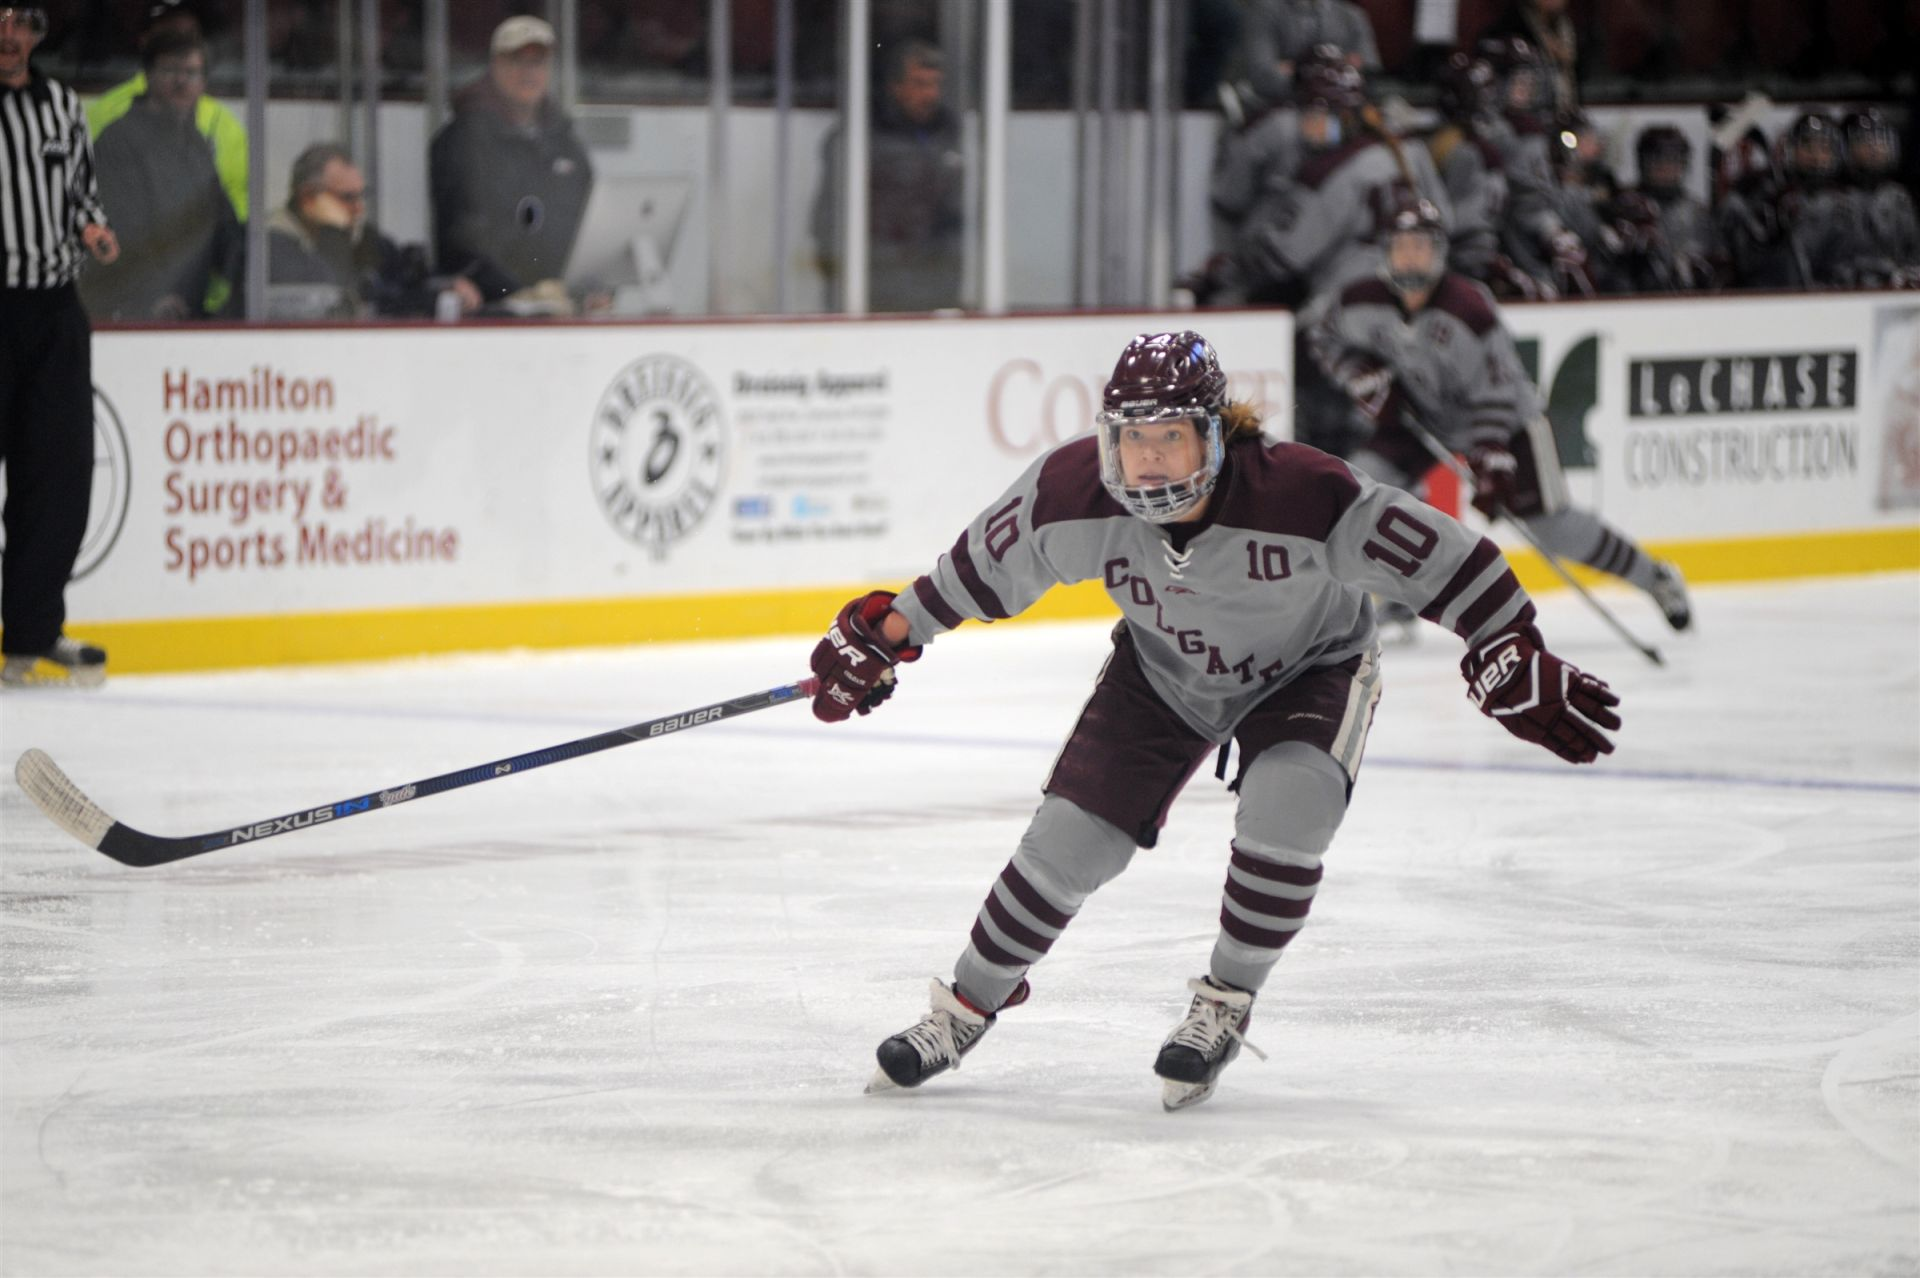 Ellie DeCaprio '14 - Colgate University